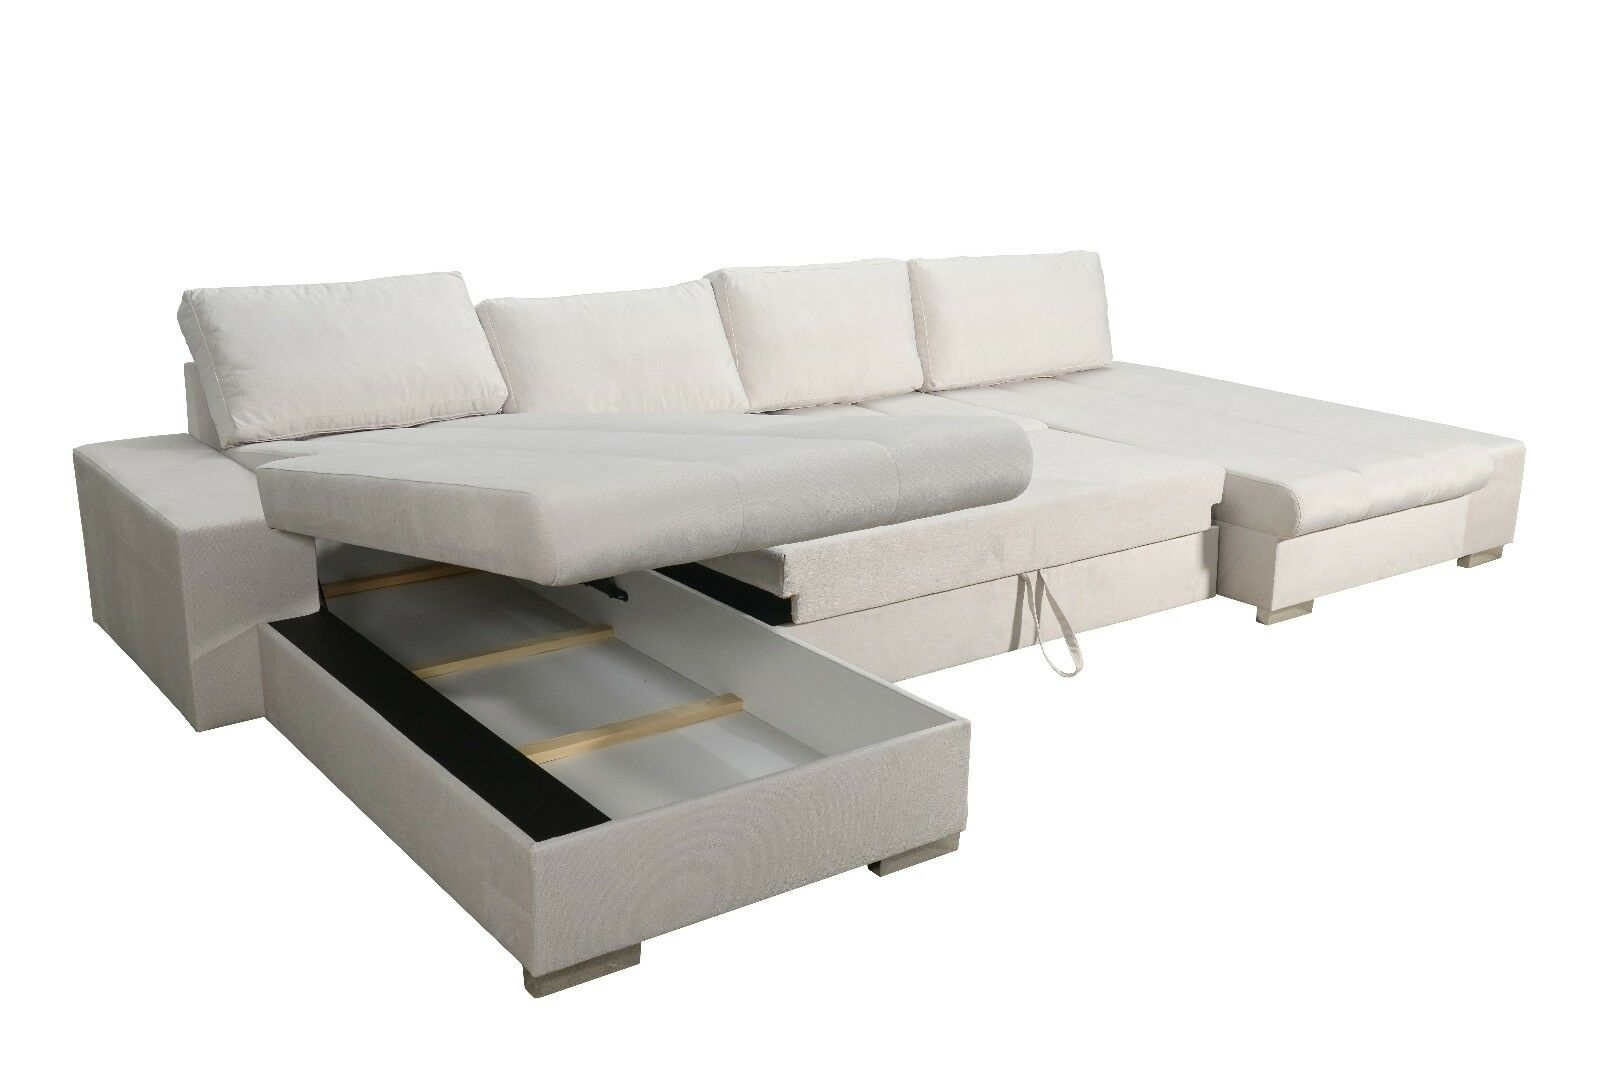 Couchgarnitur Mit Schlaffunktion Sofa Couchgarnitur Schlaffunktion Couch Sofagarnitur Verona 7 U Ottomane Links